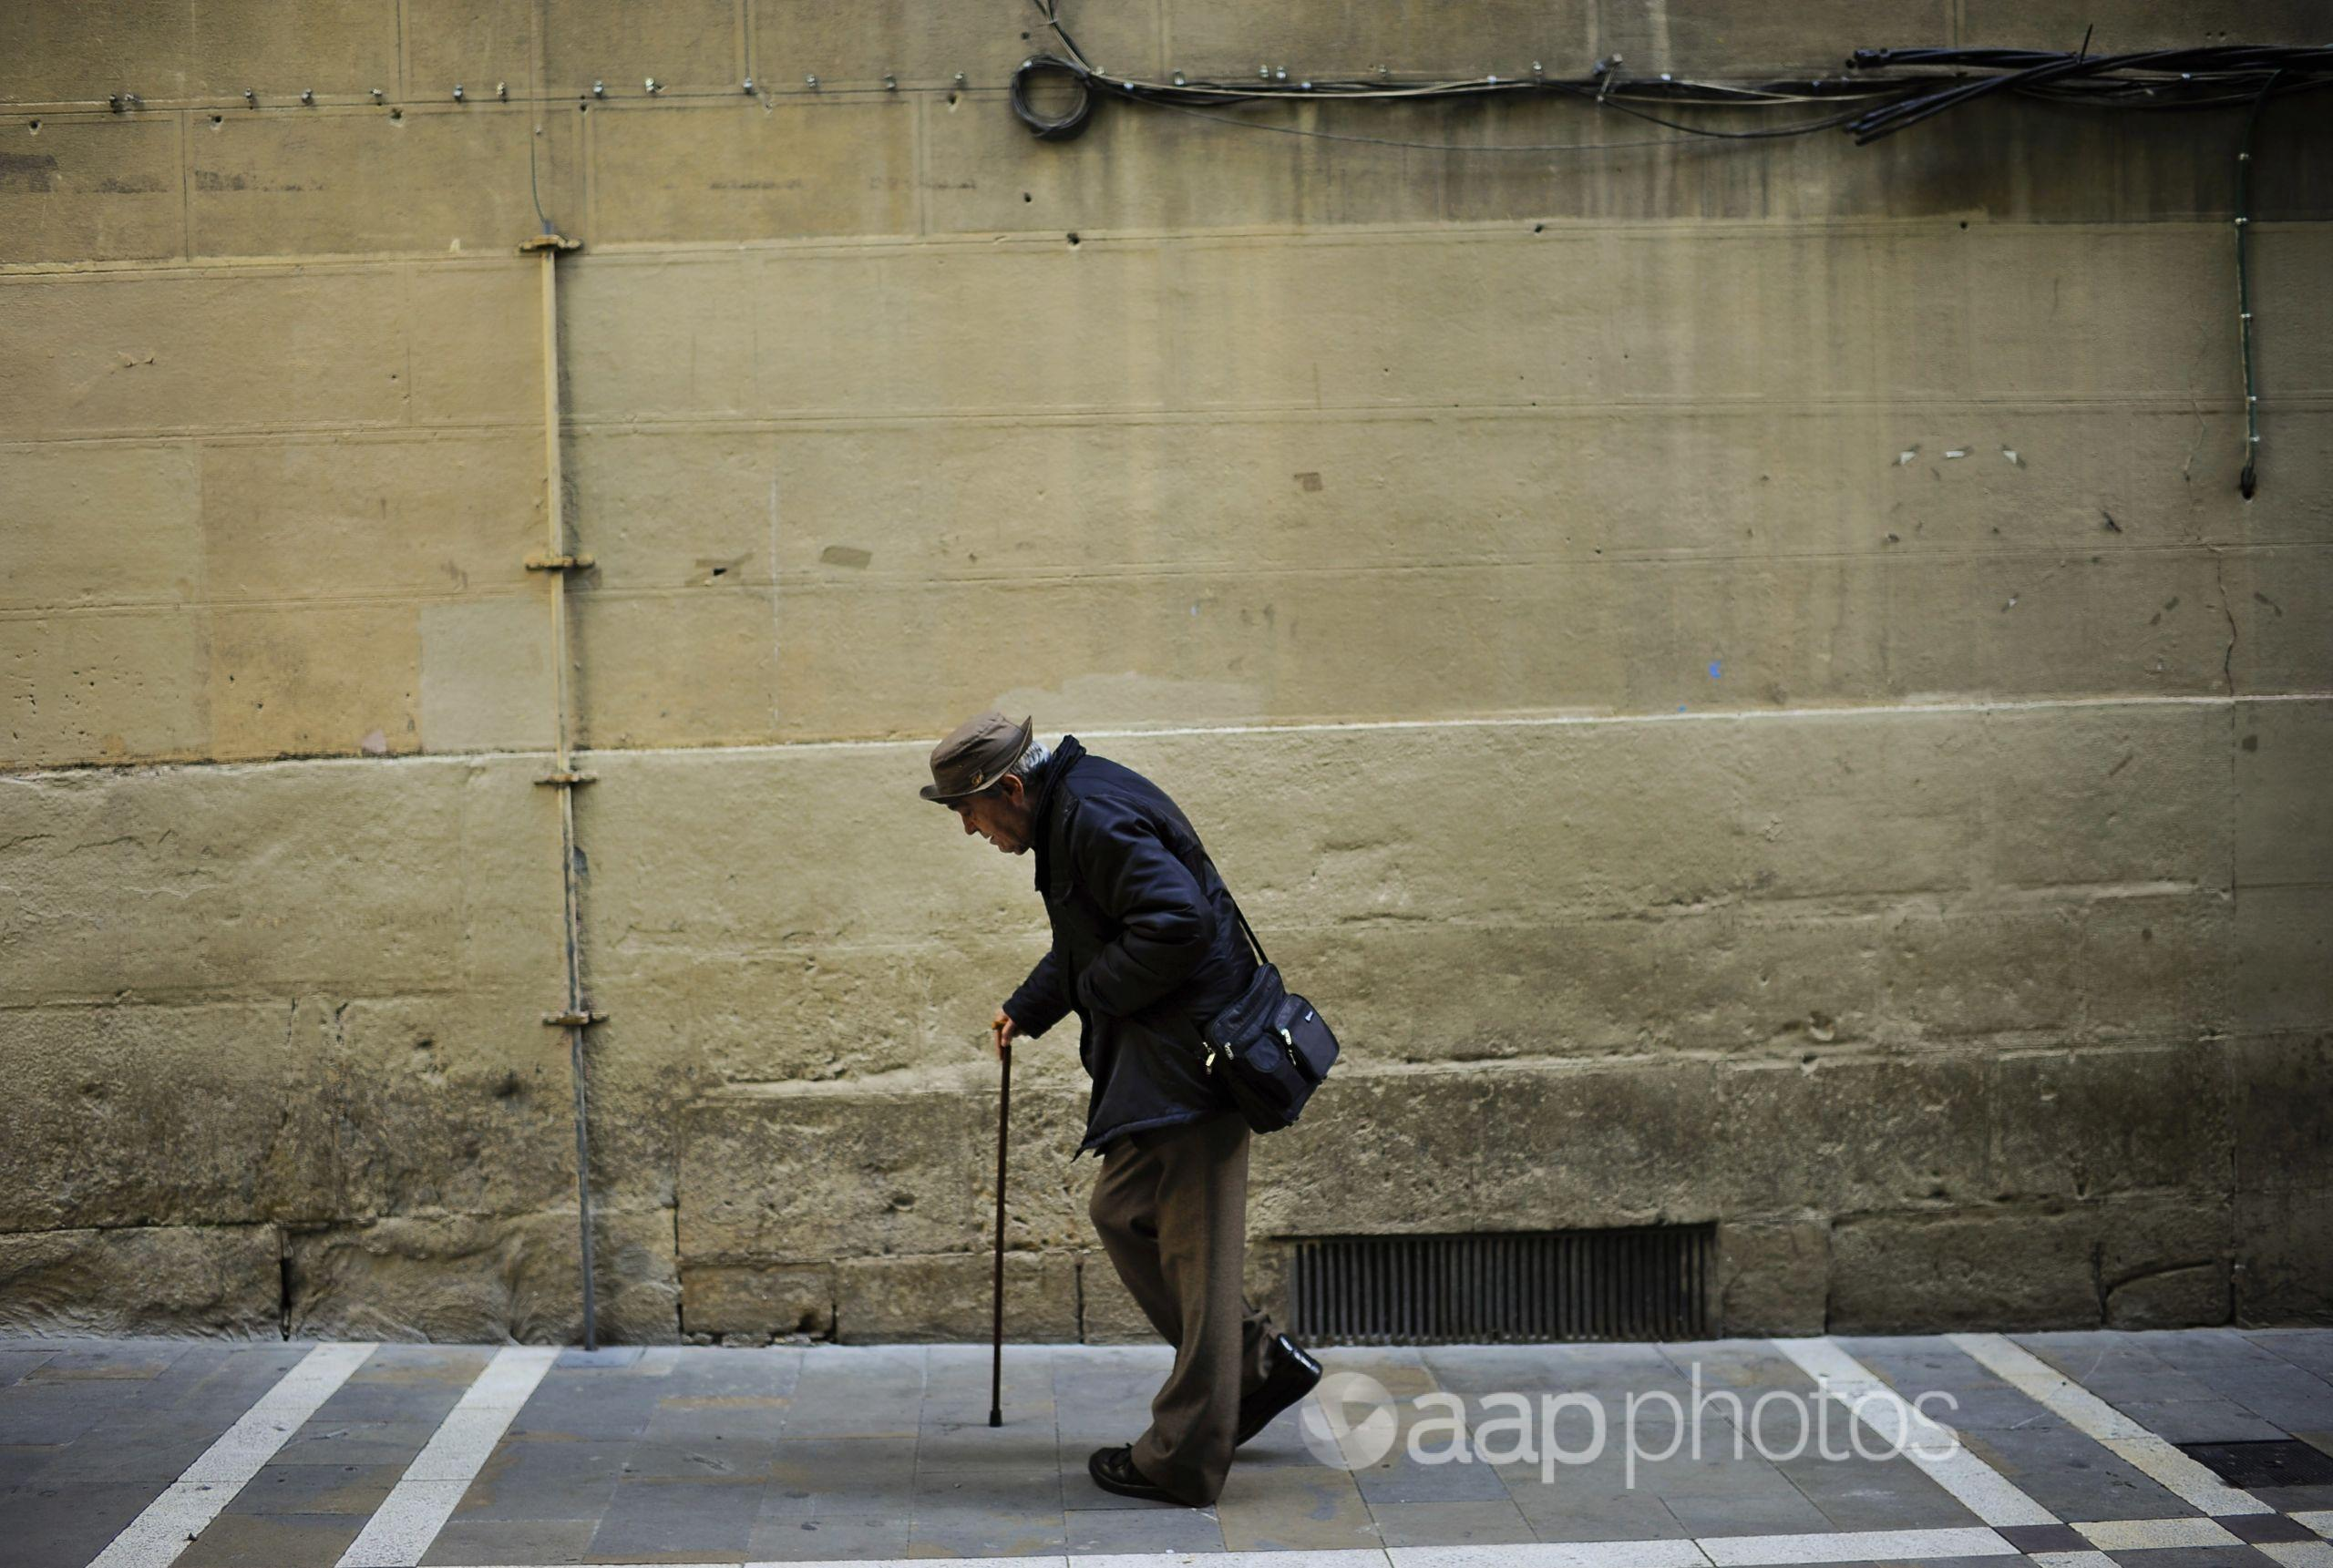 An elderly man goes for a walk aided by a walking-stick.